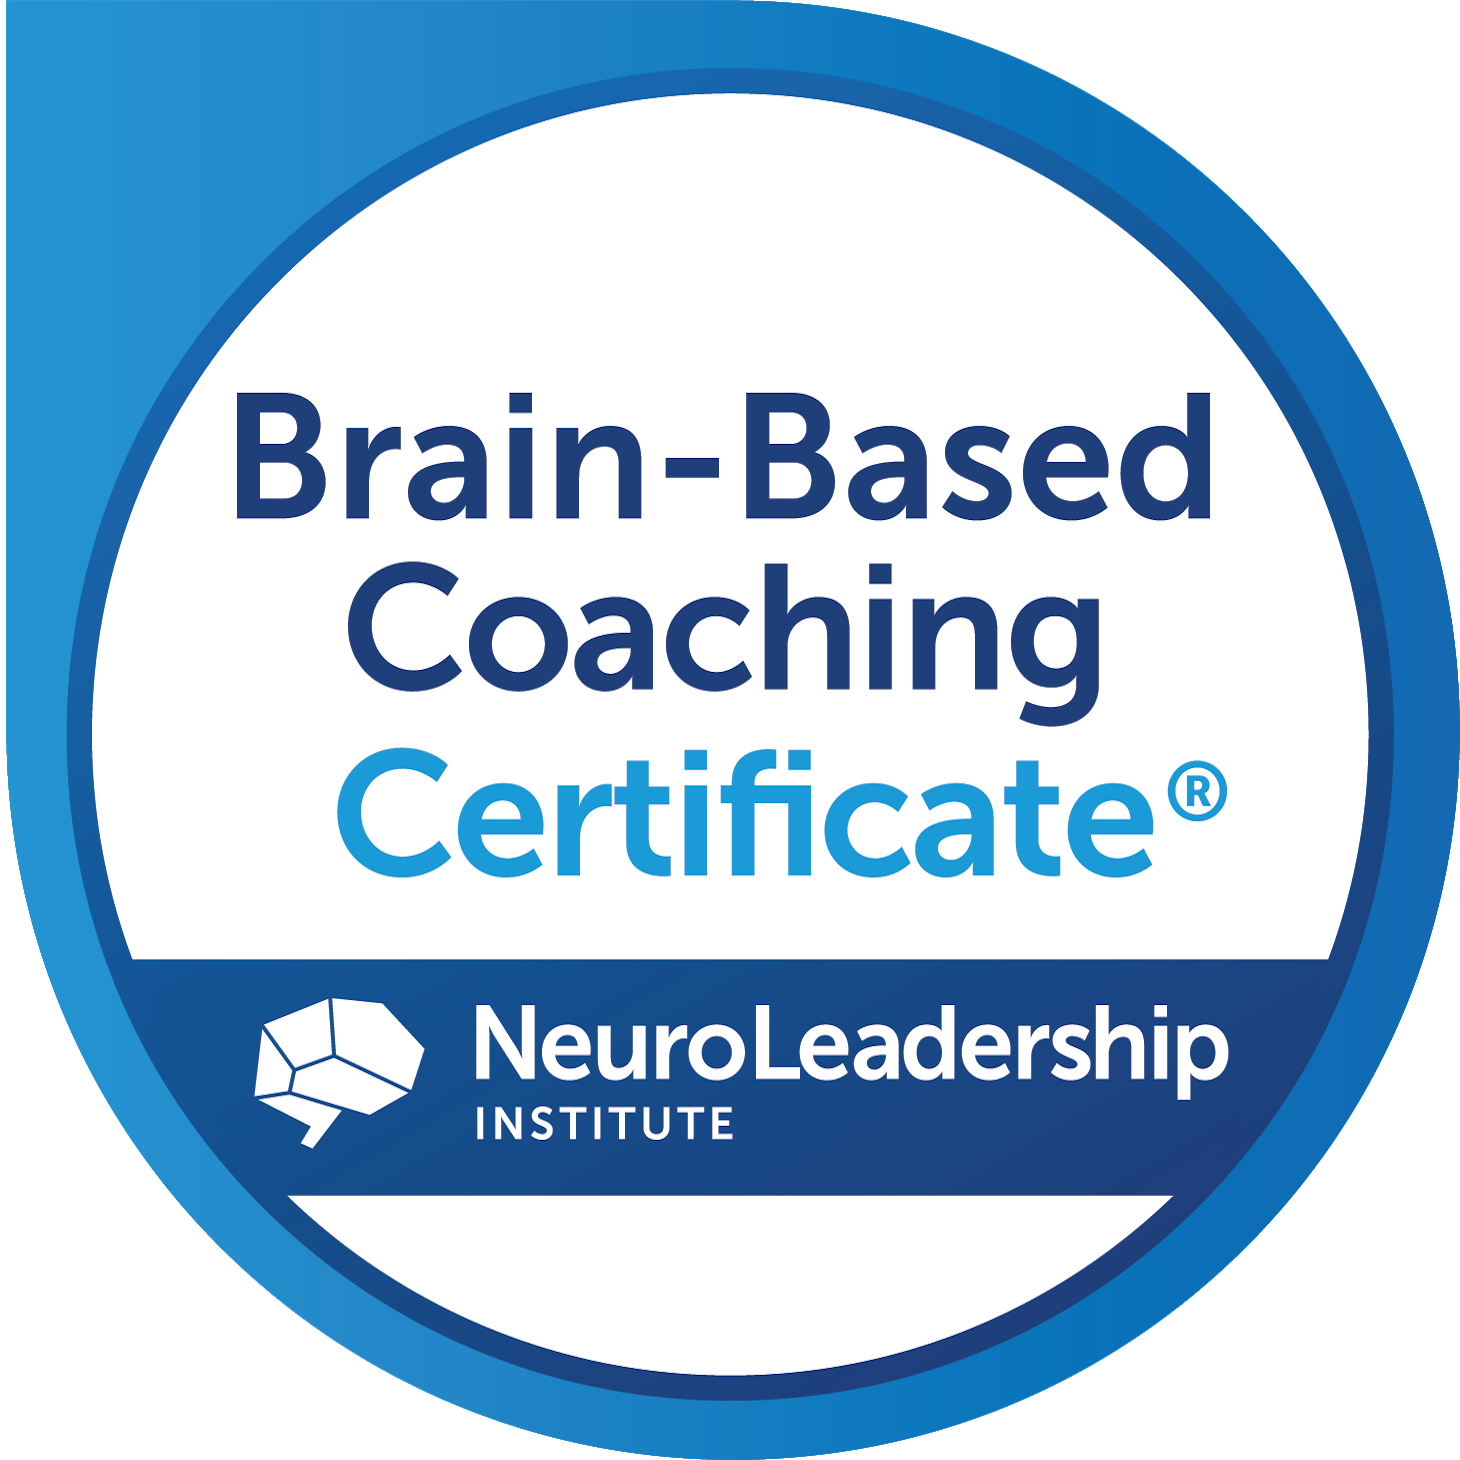 Brain-Based Coaching Certificate